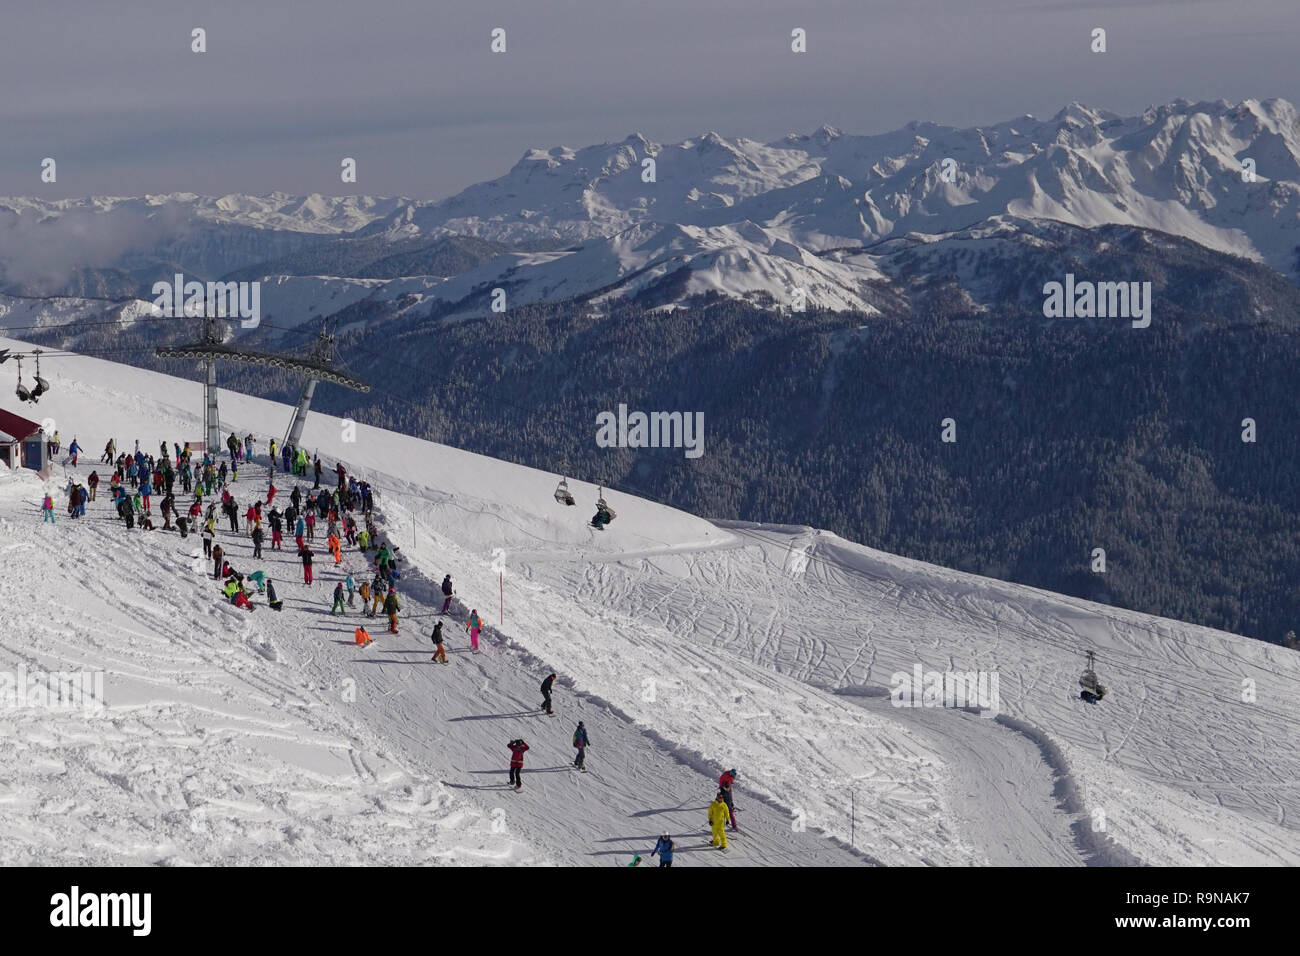 skiing, snowboarding and downhill skiing in the winter resort - Stock Image